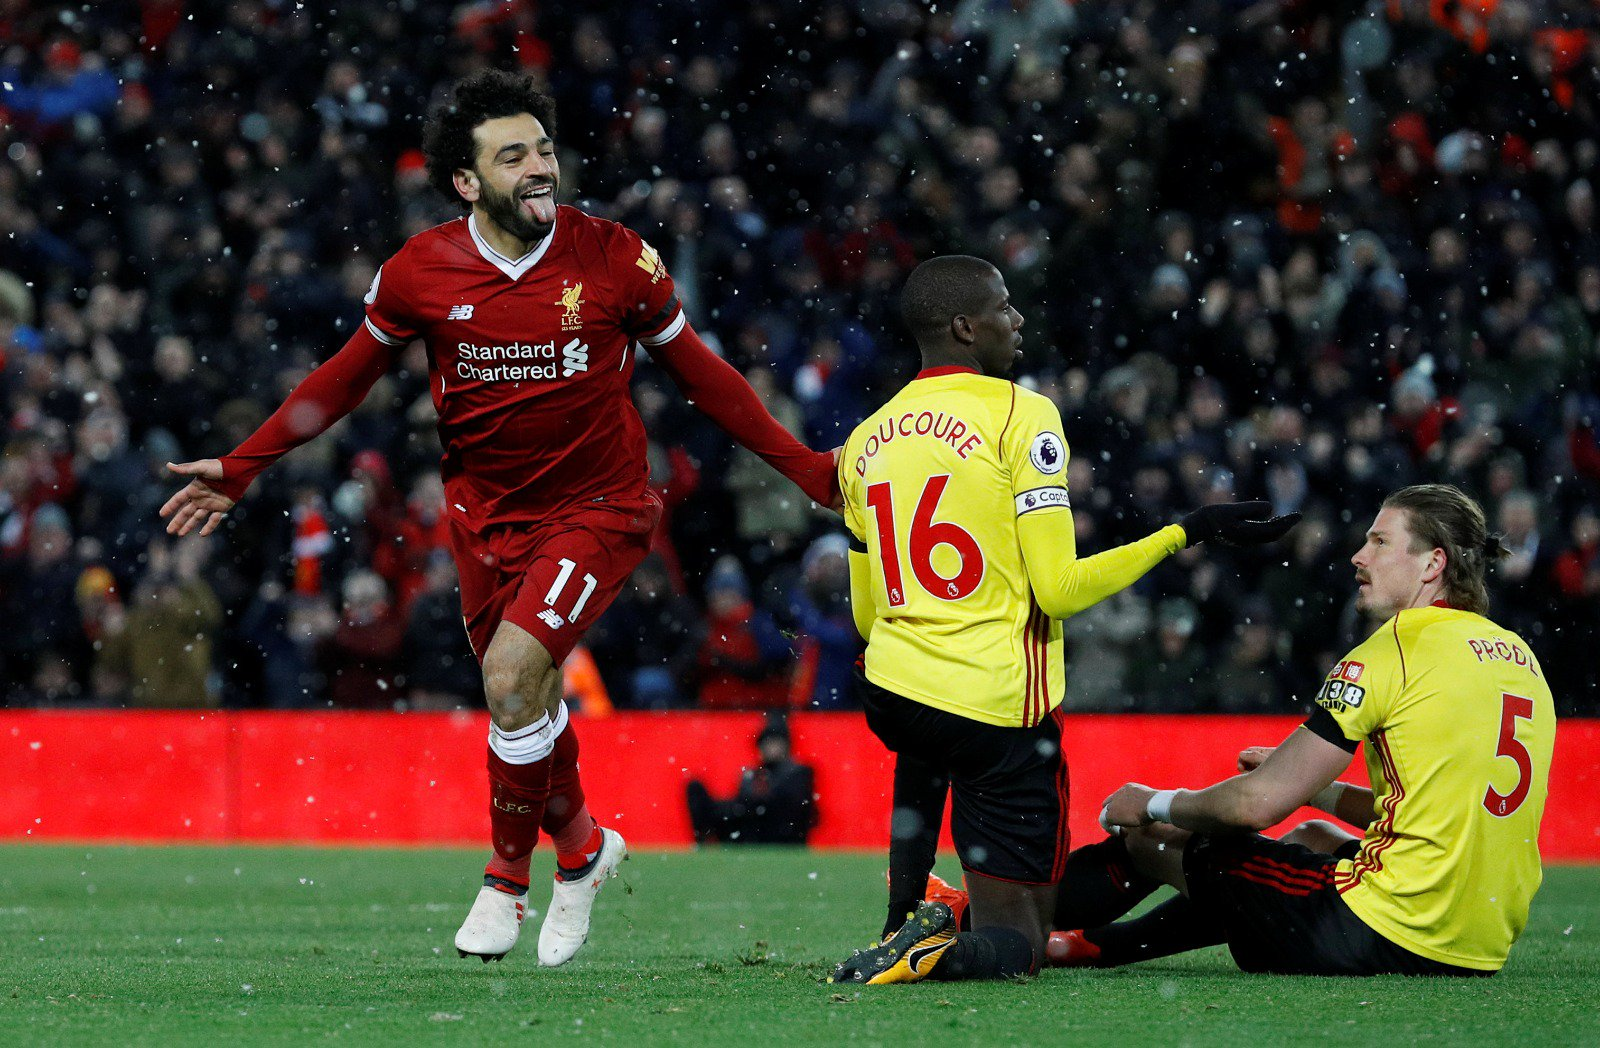 Mo Salah Mo Salah Mo Salaaaahh �������� Great night despite the cold! ❄ Good evening Reds! �� #LFC #YNWA https://t.co/elEbVuh4BD